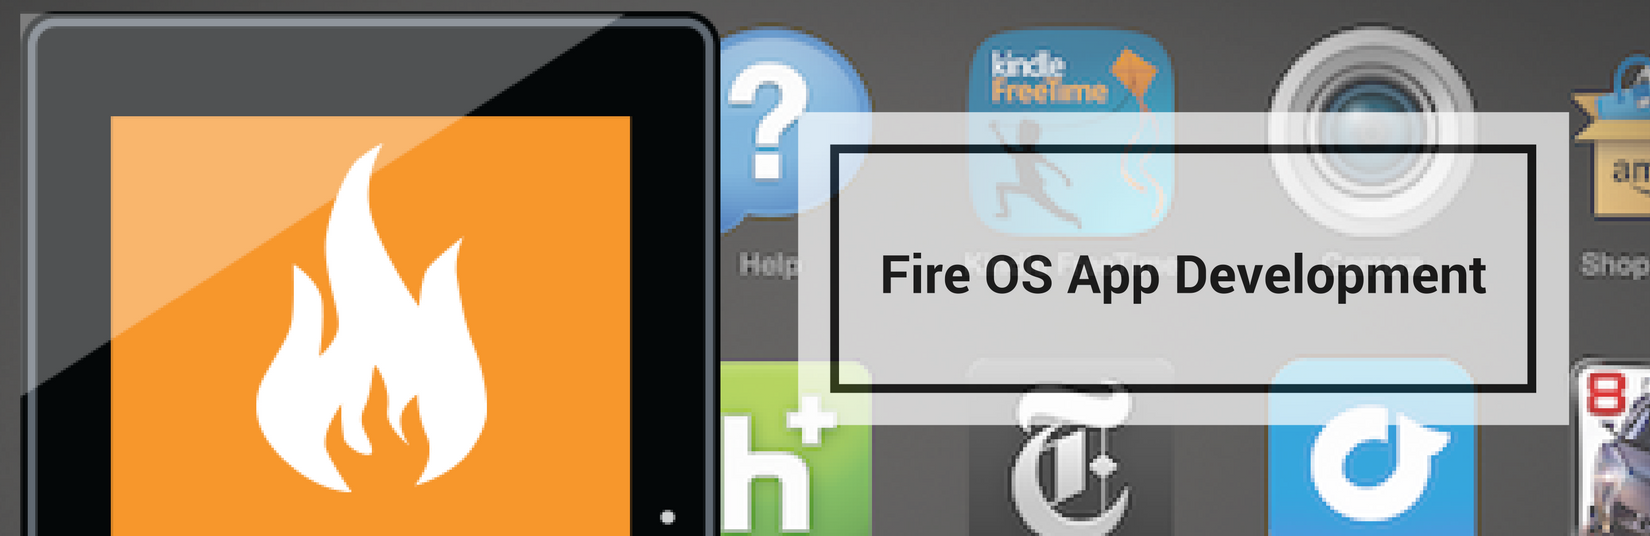 Fire OS App Development